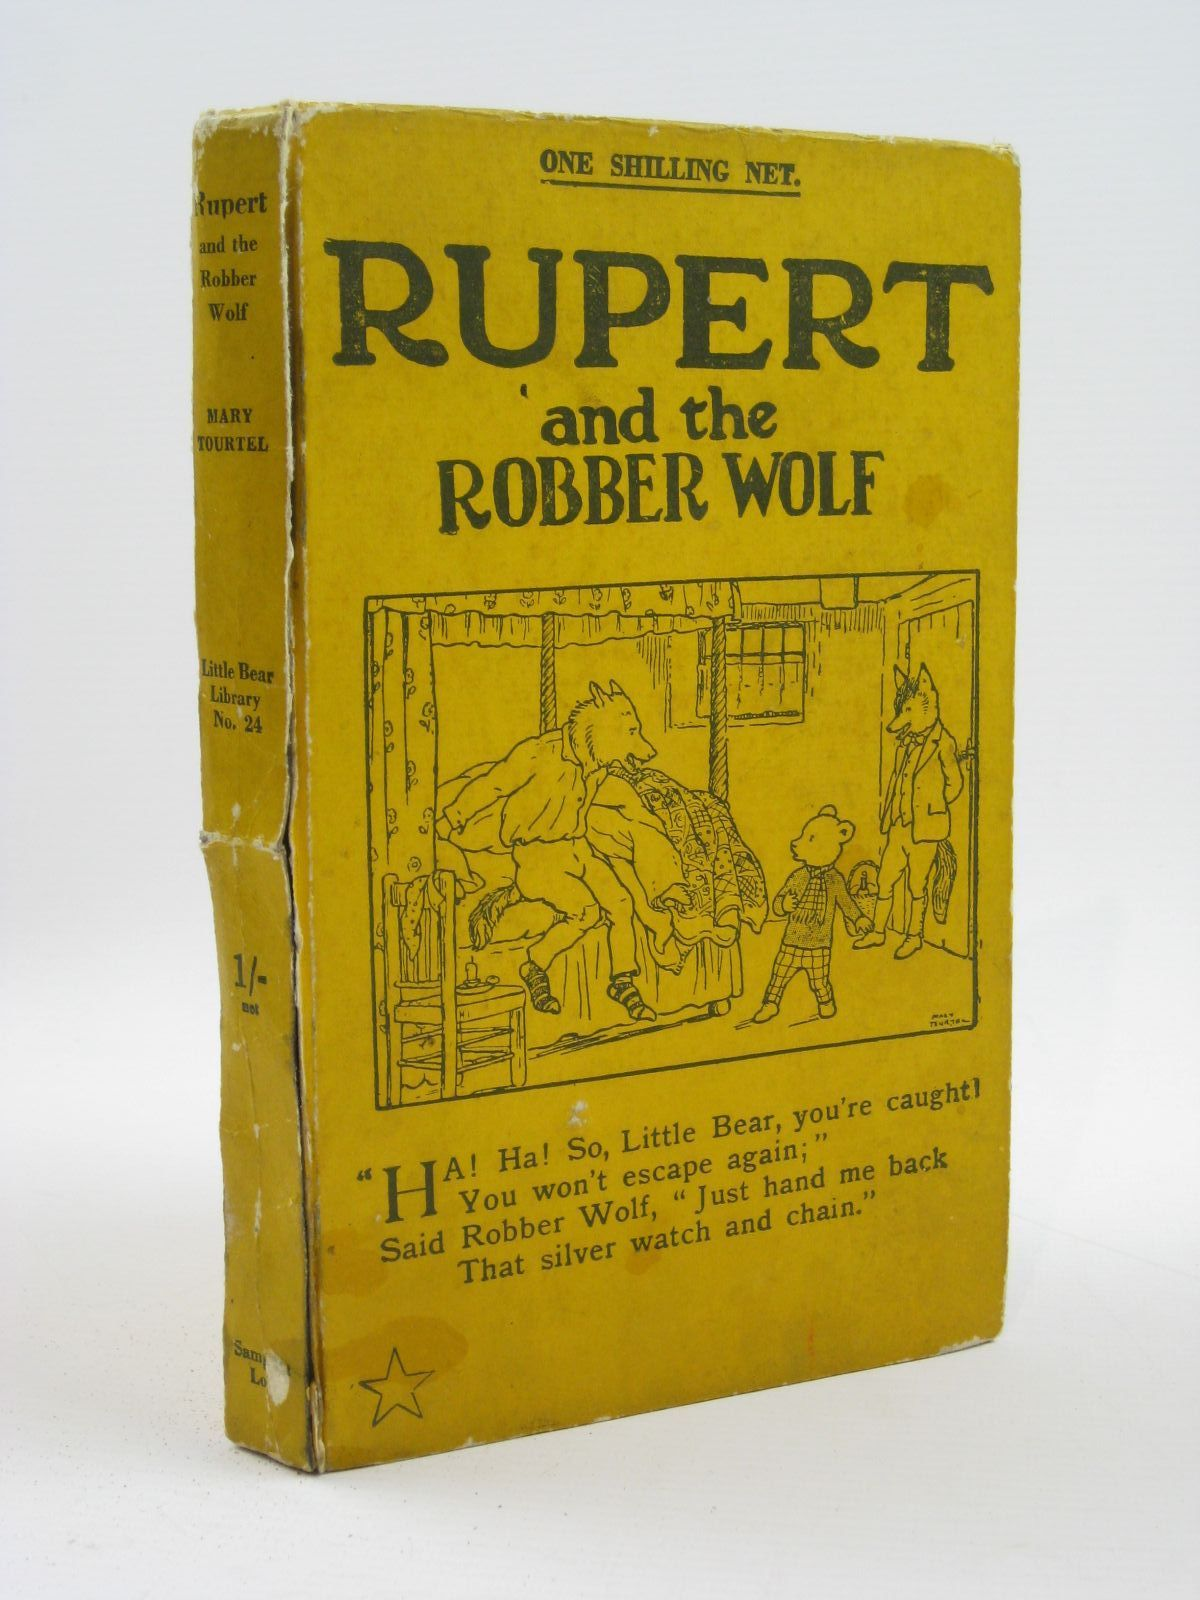 Photo of RUPERT AND THE ROBBER WOLF - RUPERT LITTLE BEAR LIBRARY No. 24 written by Tourtel, Mary illustrated by Tourtel, Mary published by Sampson Low, Marston & Co. Ltd. (STOCK CODE: 1316470)  for sale by Stella & Rose's Books